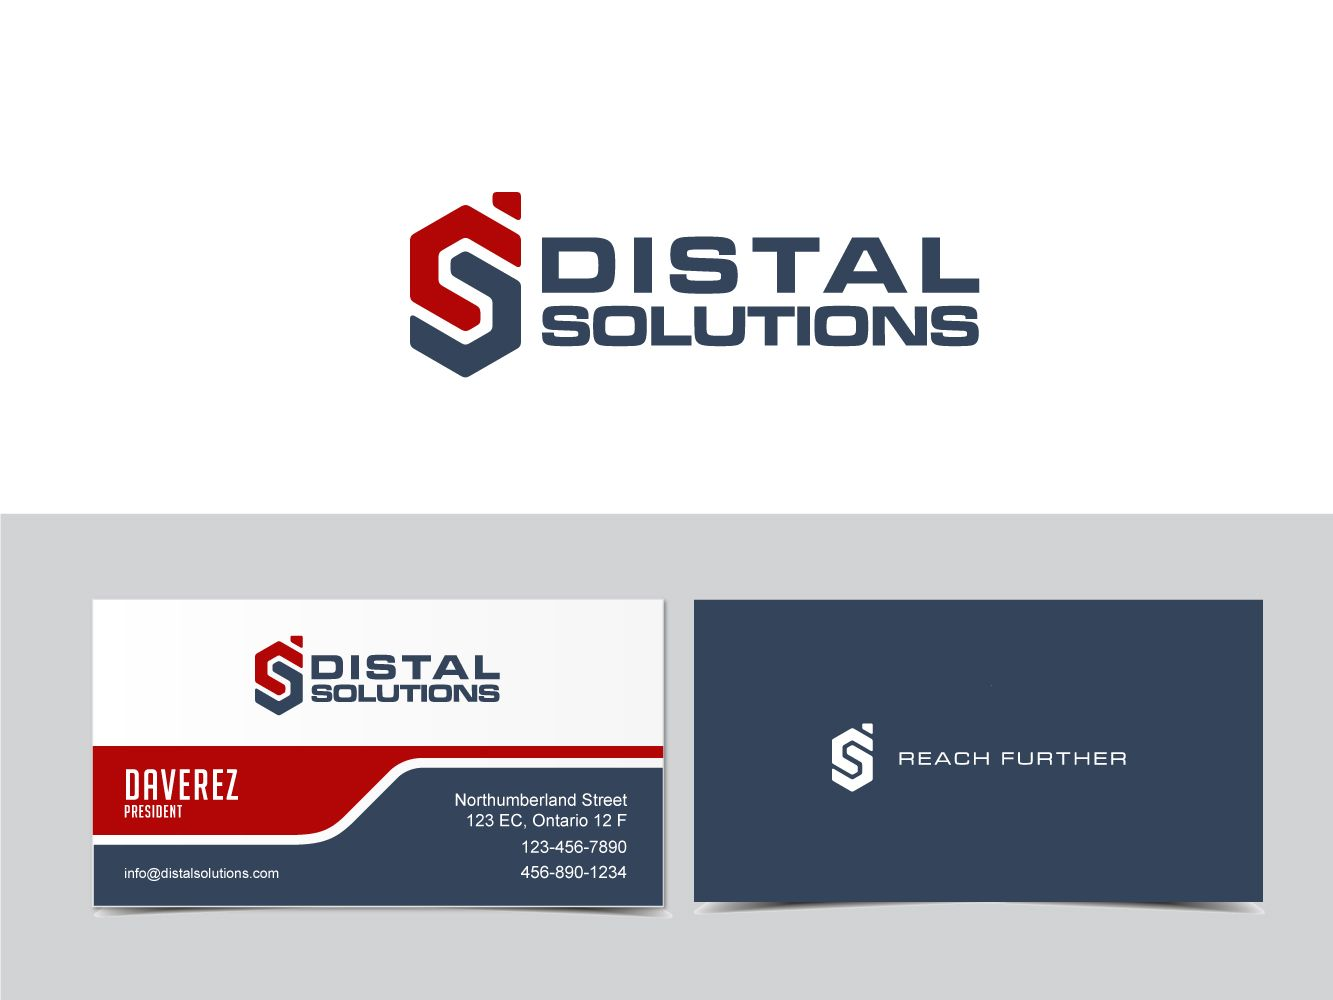 Help Distal Solutions design life-saving products, starting with a logo... Logo & business card design #281 by bhozosh